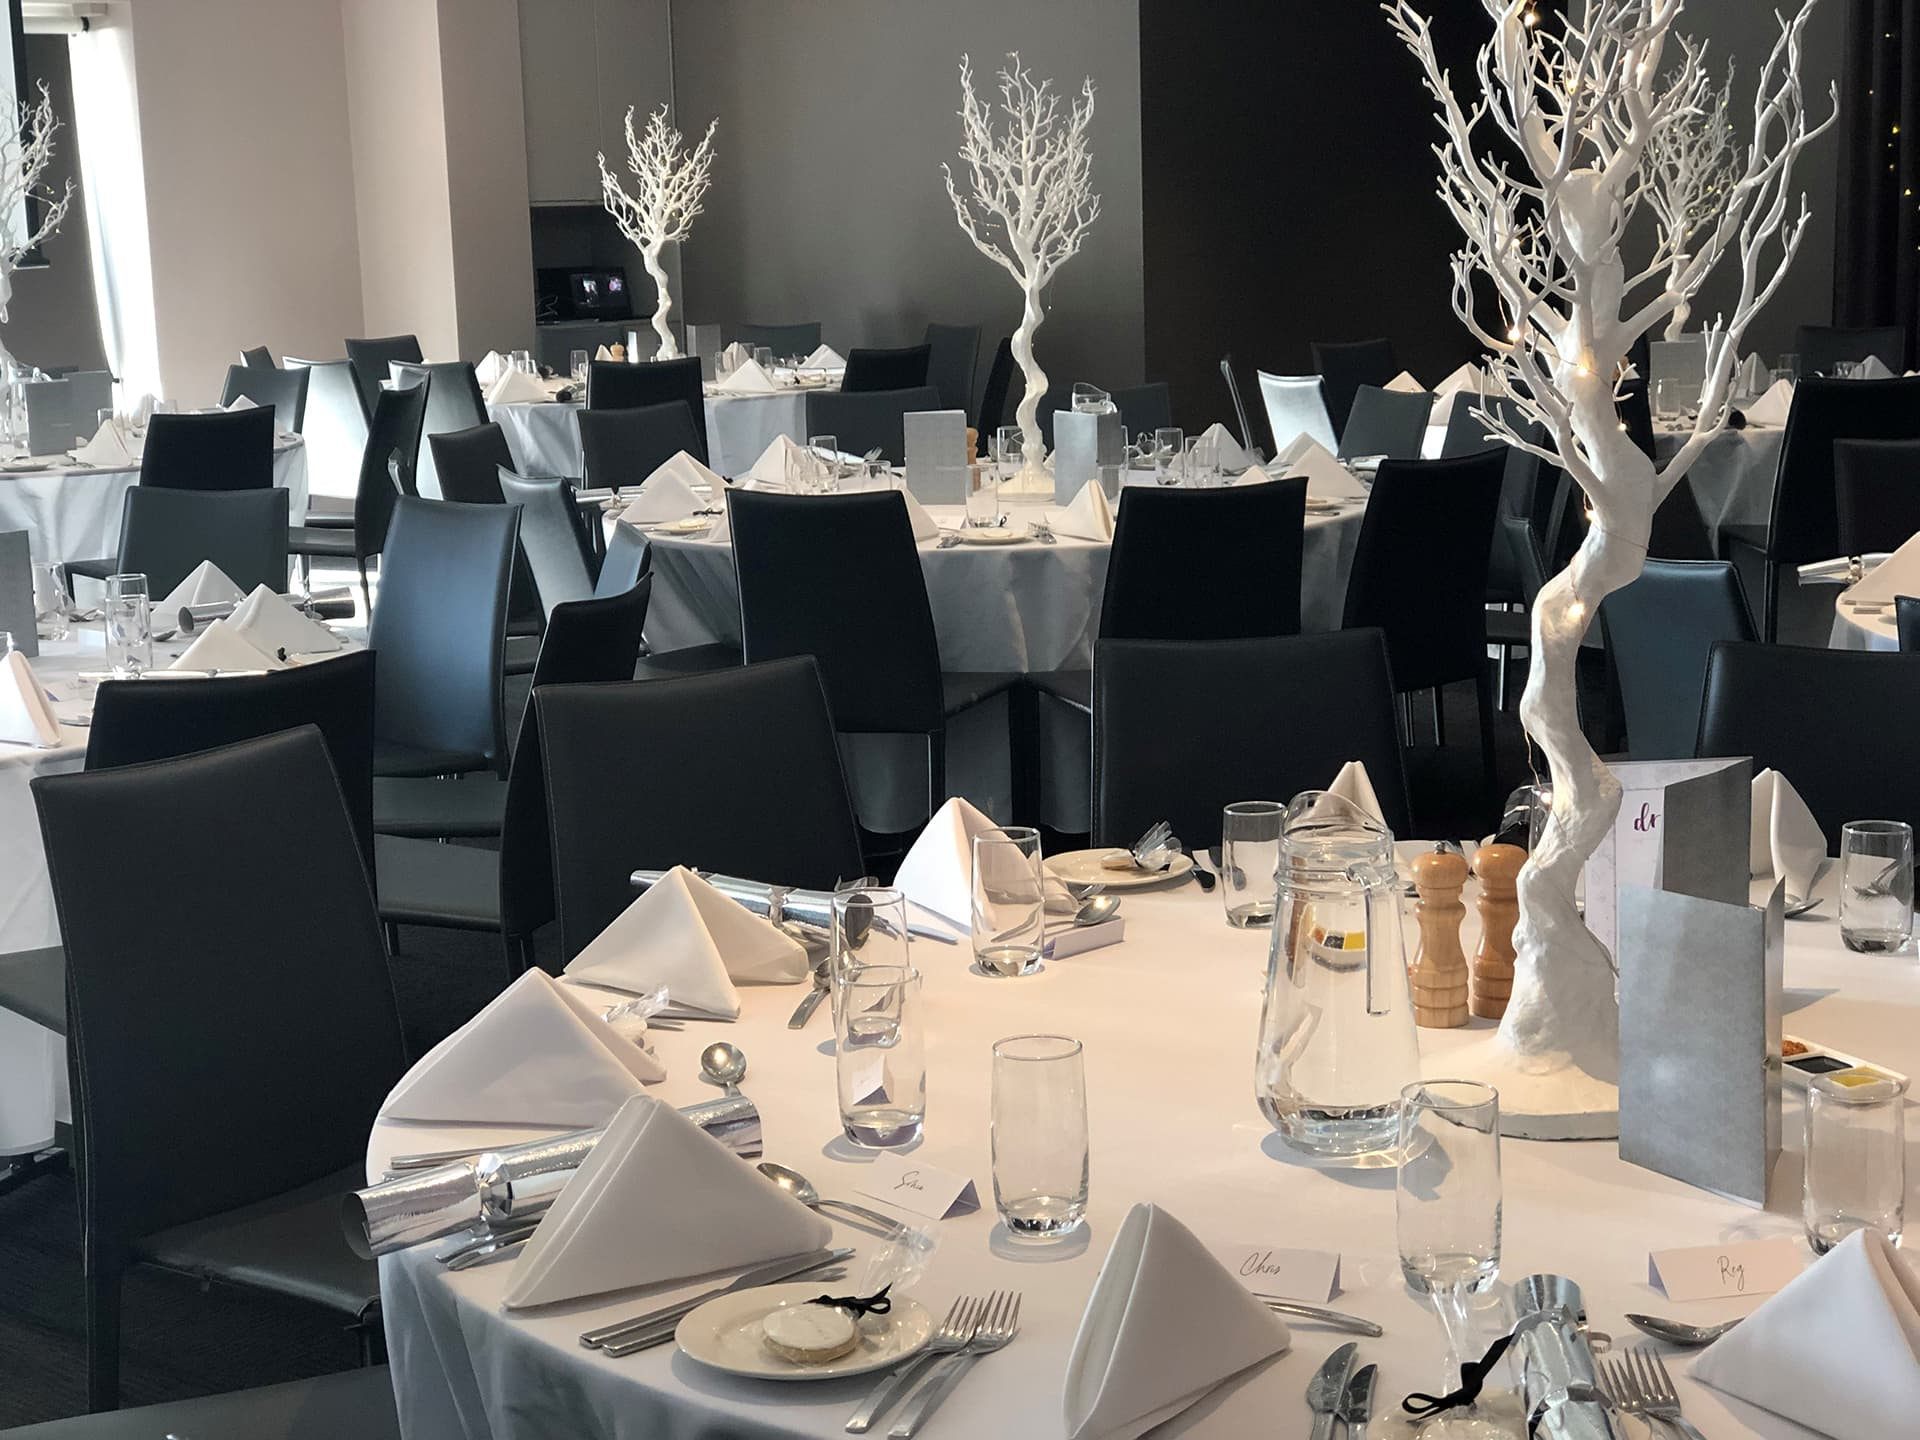 adelaide work christmas party venues